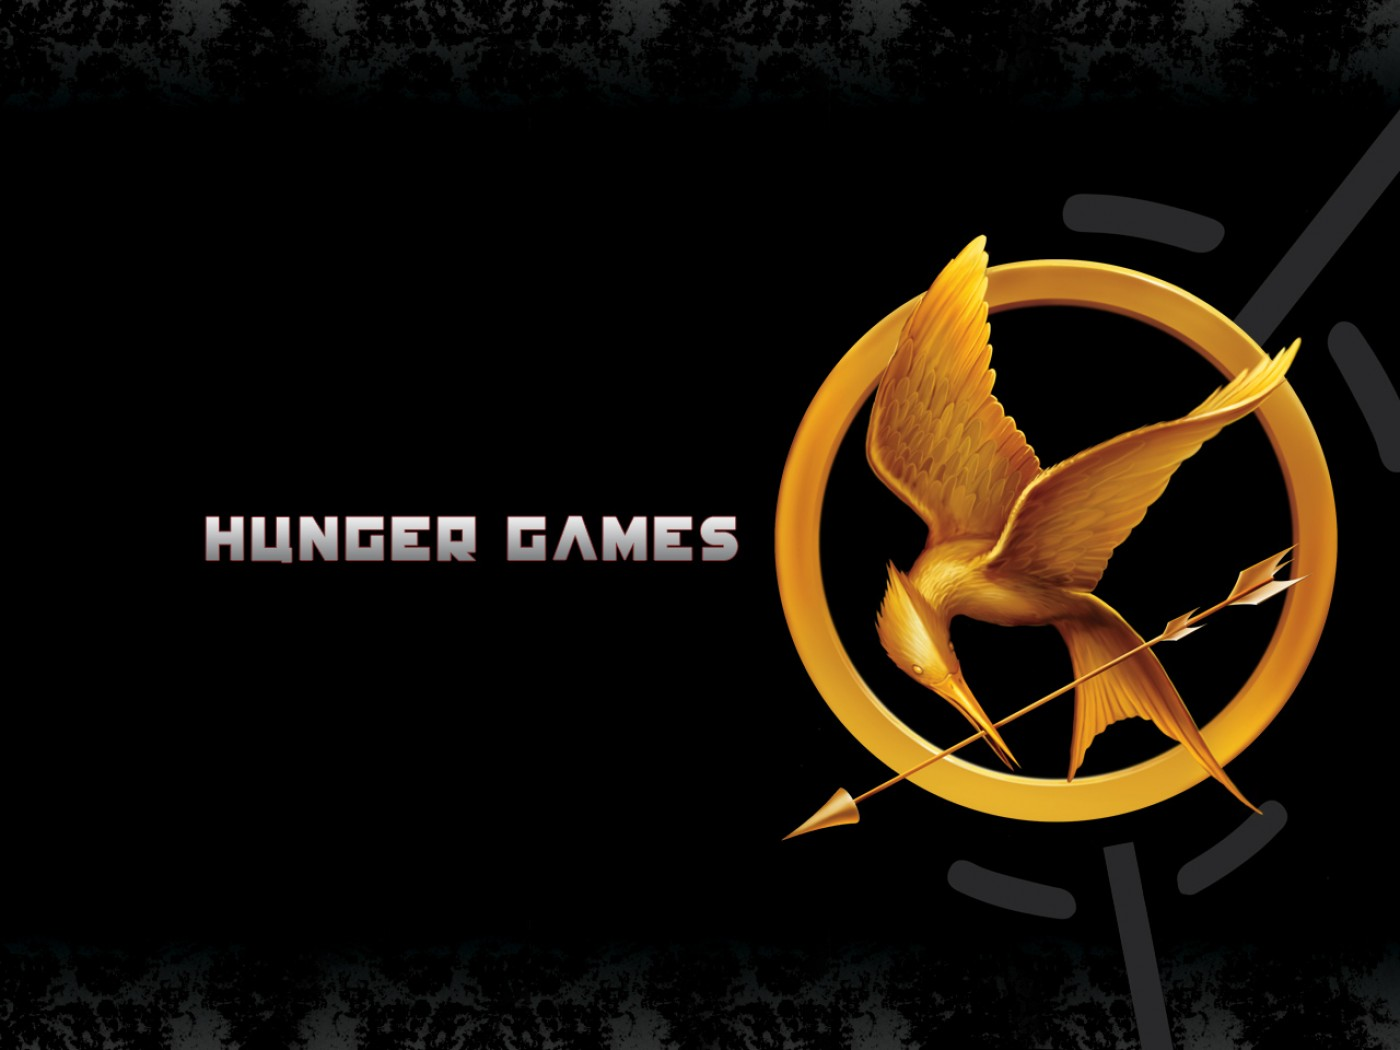 025 The Hunger Games Book Review Essay Imposing 1400